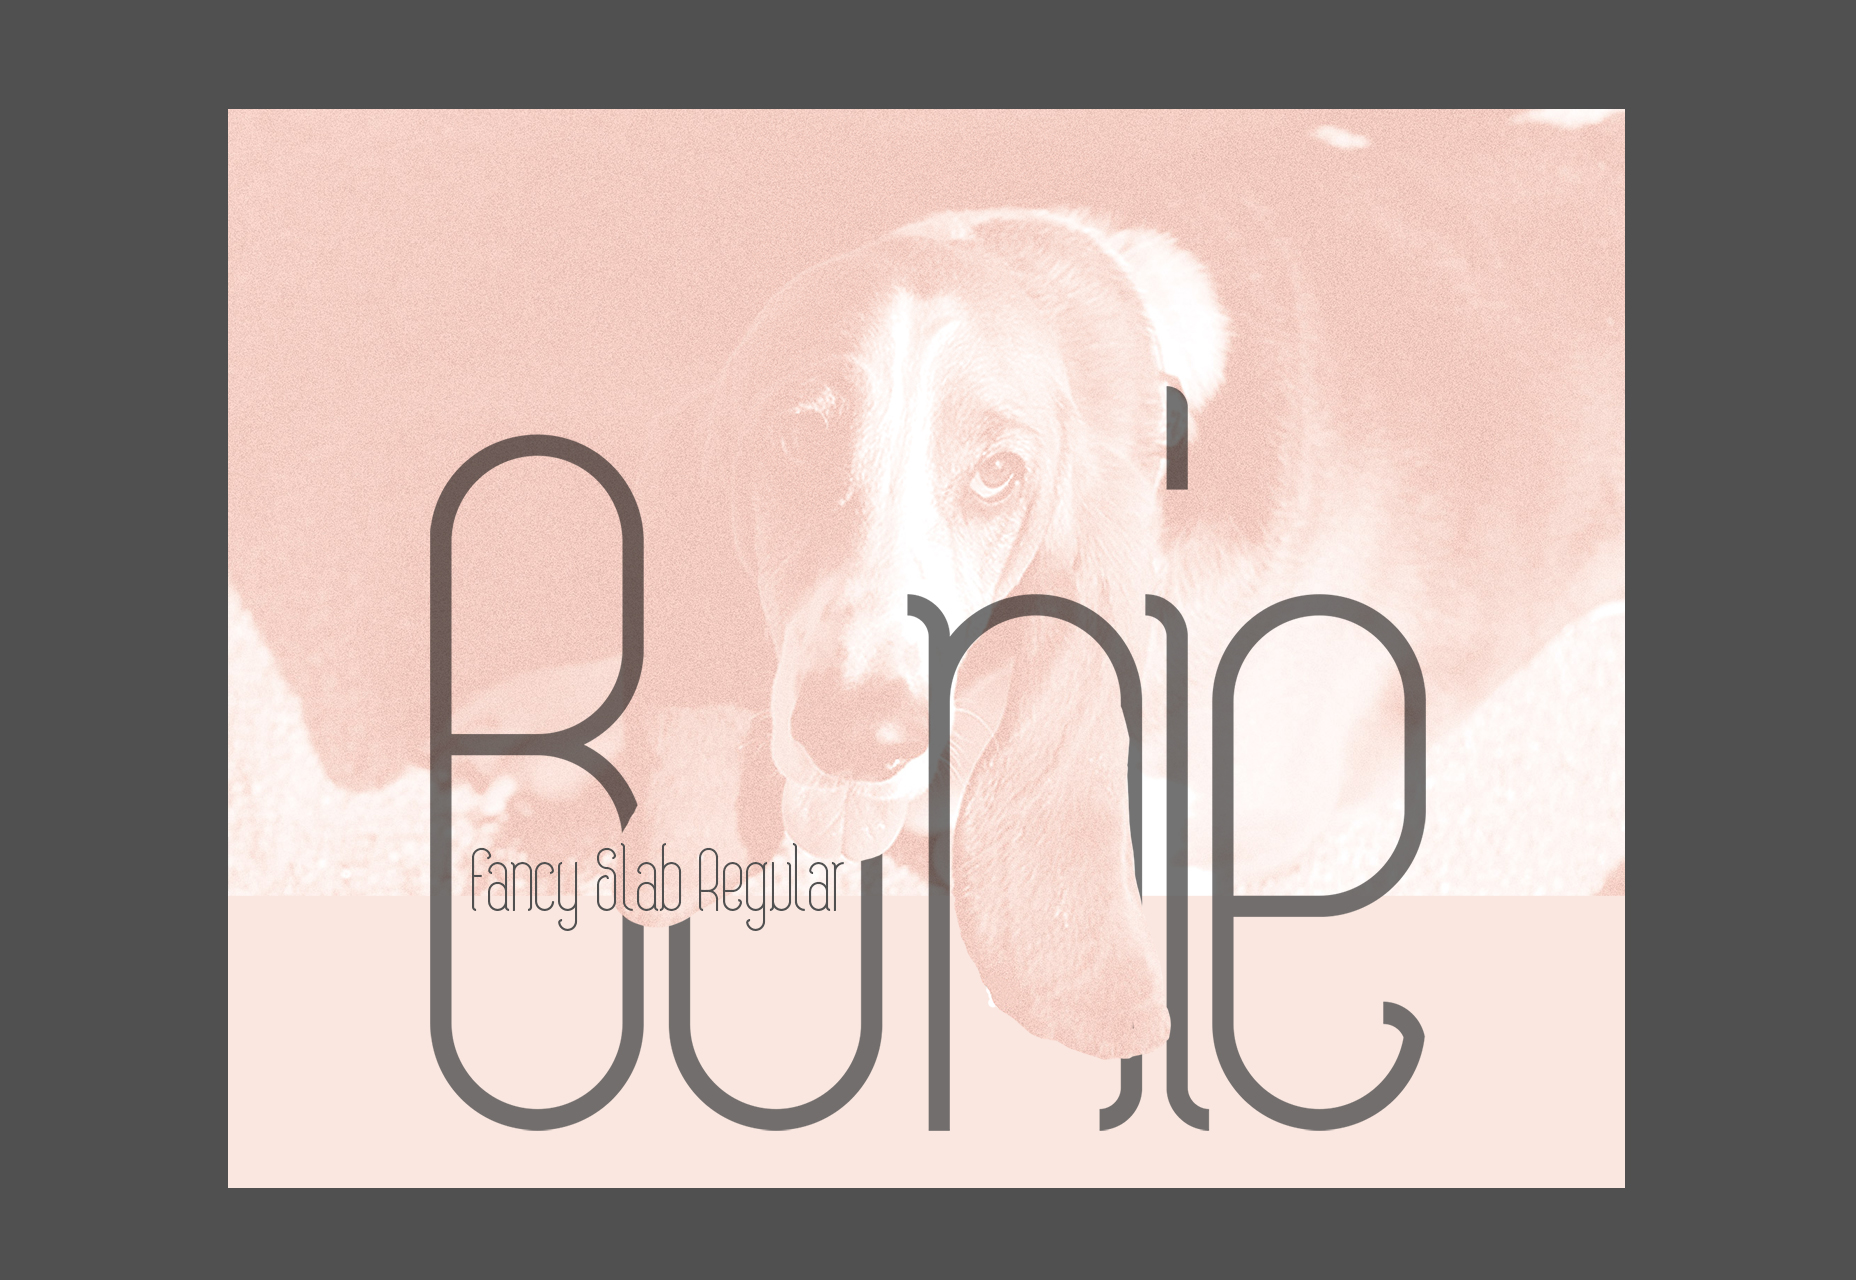 Bonie: Fancy Slab Regular Typeface